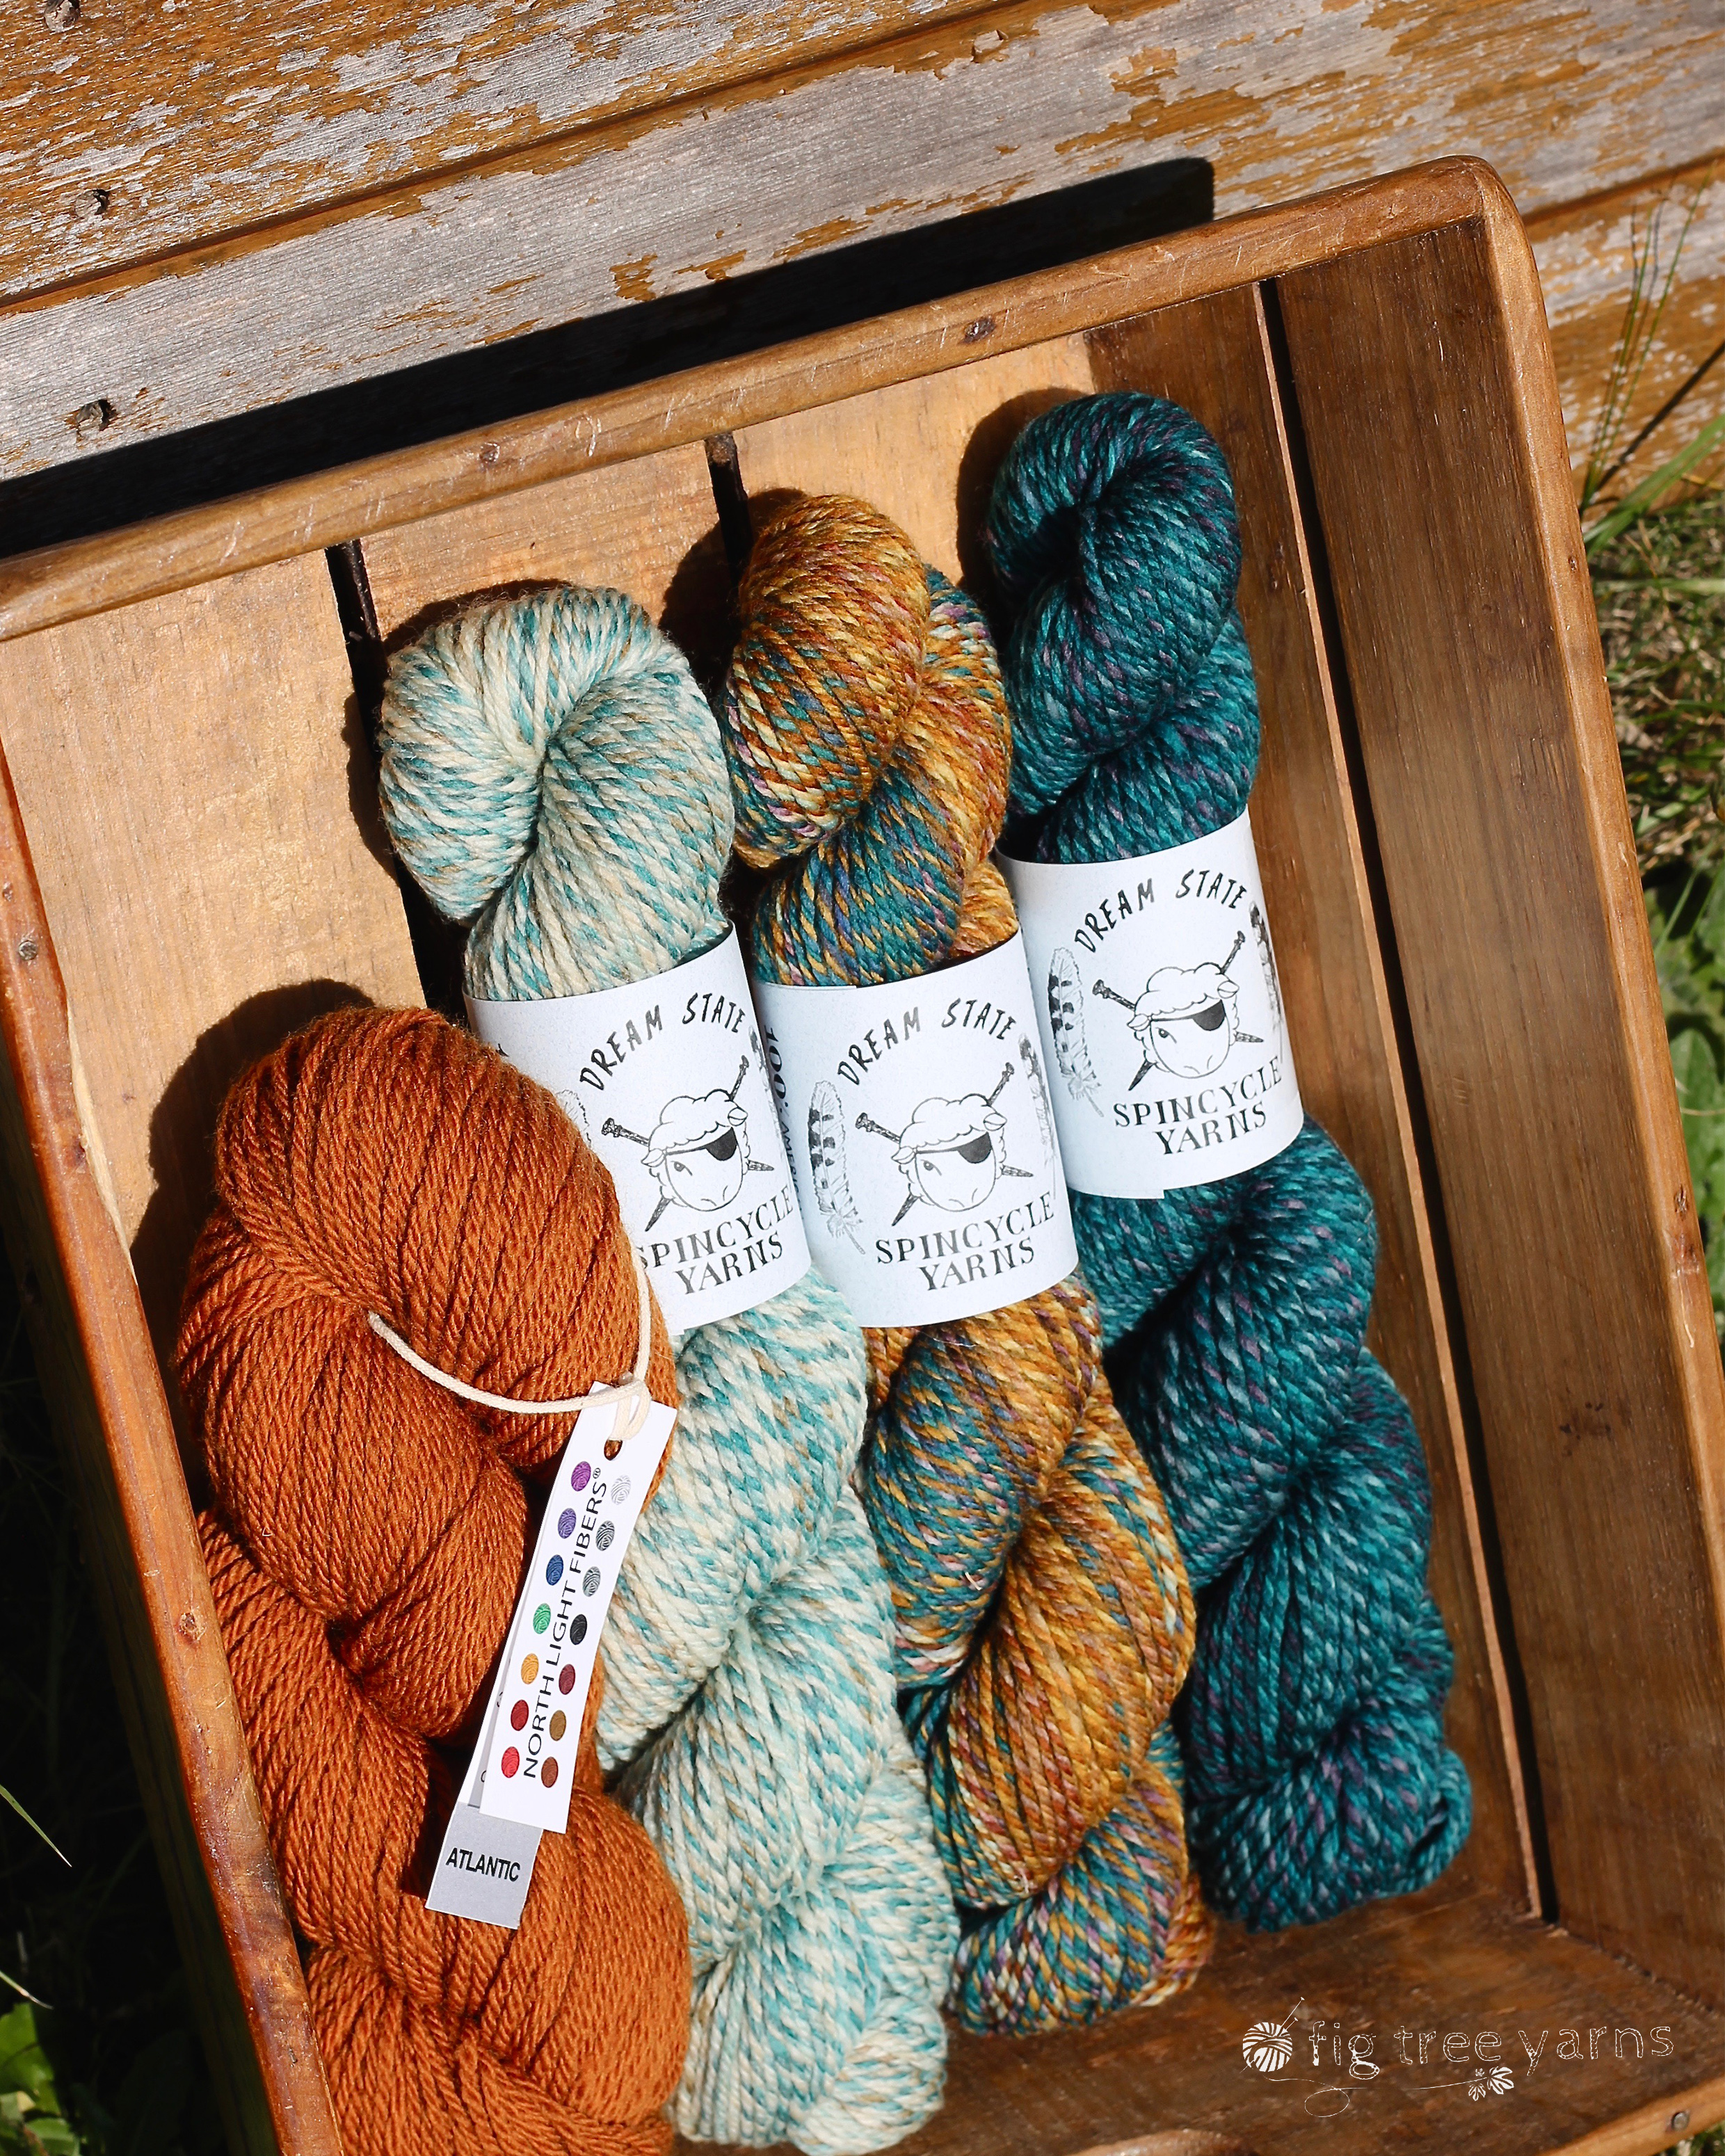 FIG TREE YARNS  Rachel and Kate from Spincycle Yarns, need no introduction to the discerning knitter and Fig Tree Yarns will bring 'Dyed in the Wool', 'Dream State' & 'Versus' to EYF 2019. 'The Shift' Cowl which we launched at EYF 2018 was one of the most popular patterns of the year and for EYF2019, we are launching another exciting Spincycle wonder. Don't miss it!